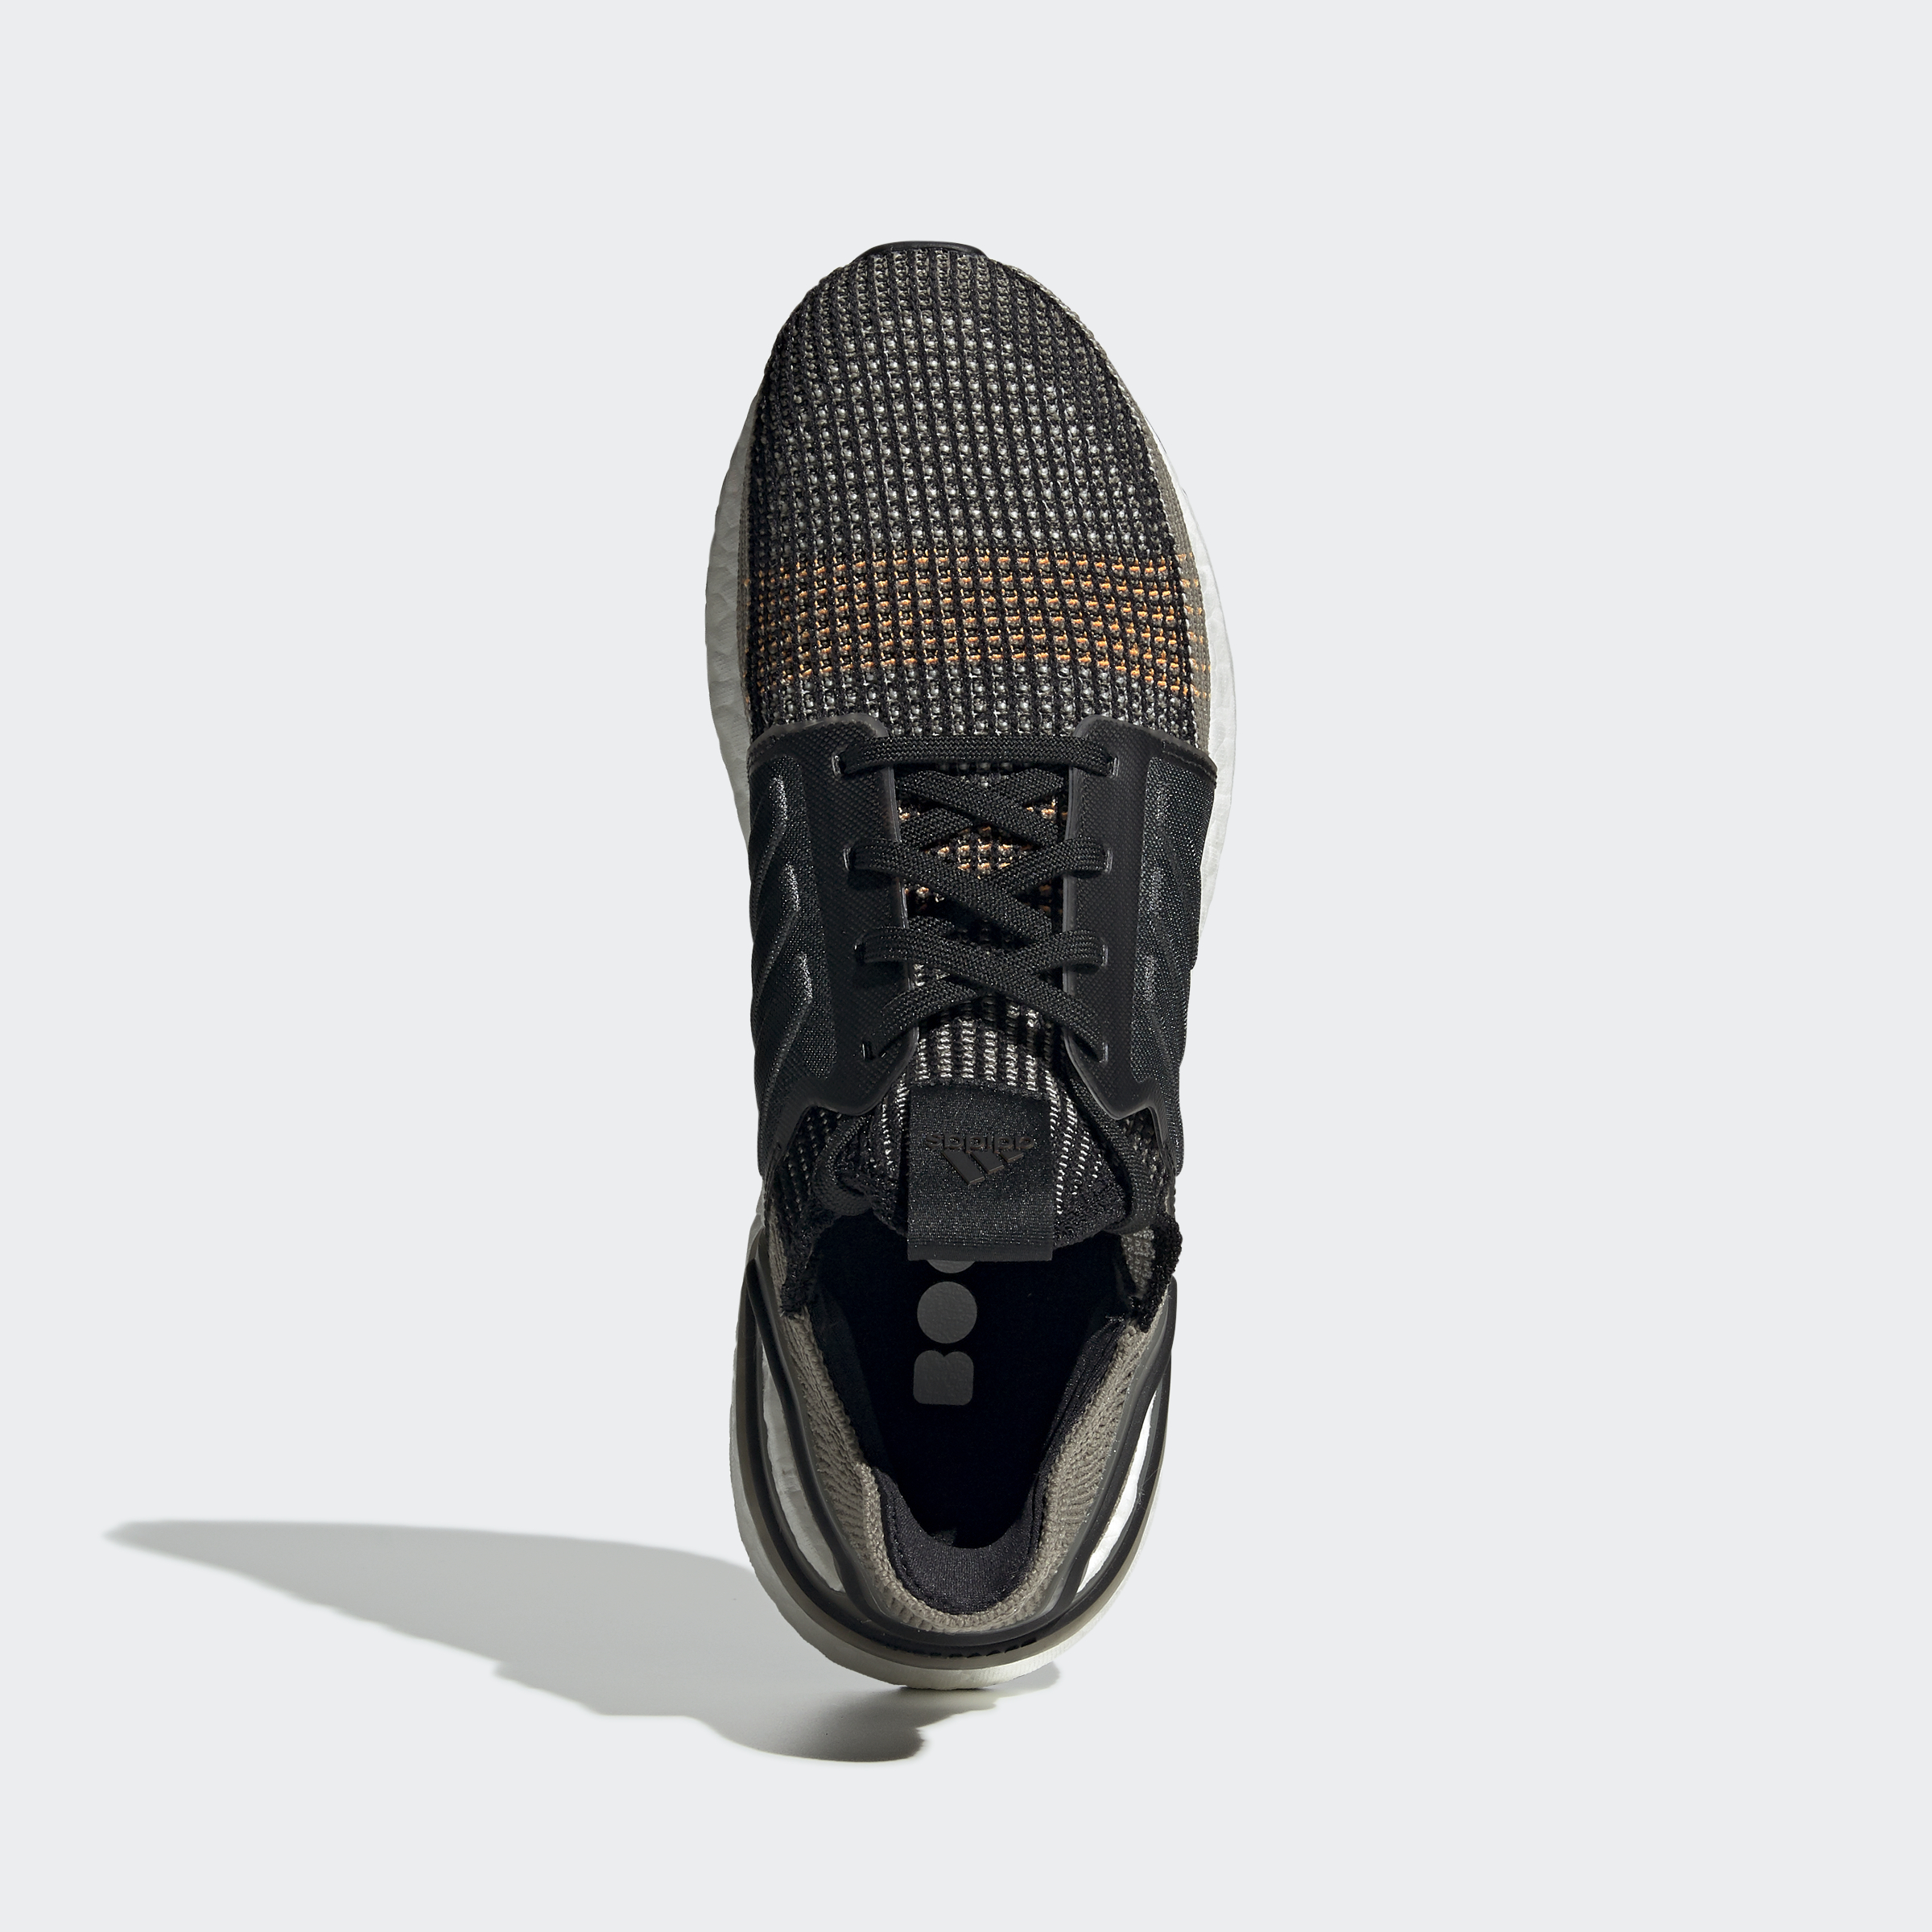 adidas-Ultraboost-19-Shoes-Athletic-amp-Sneakers thumbnail 86